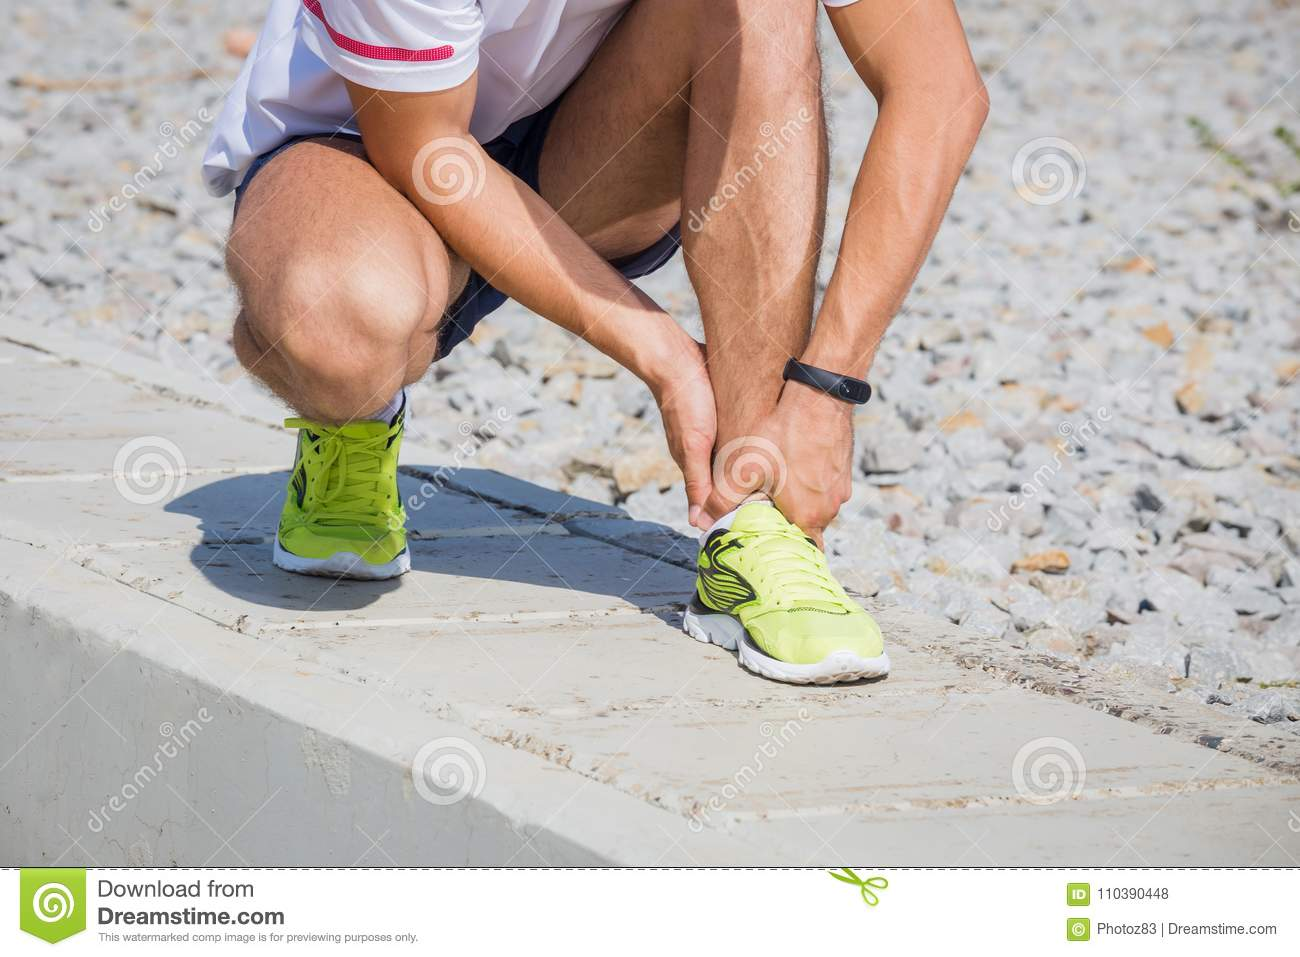 3b81eaa5e1 Running athlete feeling pain after having his leg injured. Accident on  running track during the morning exercise. Sport accident concepts